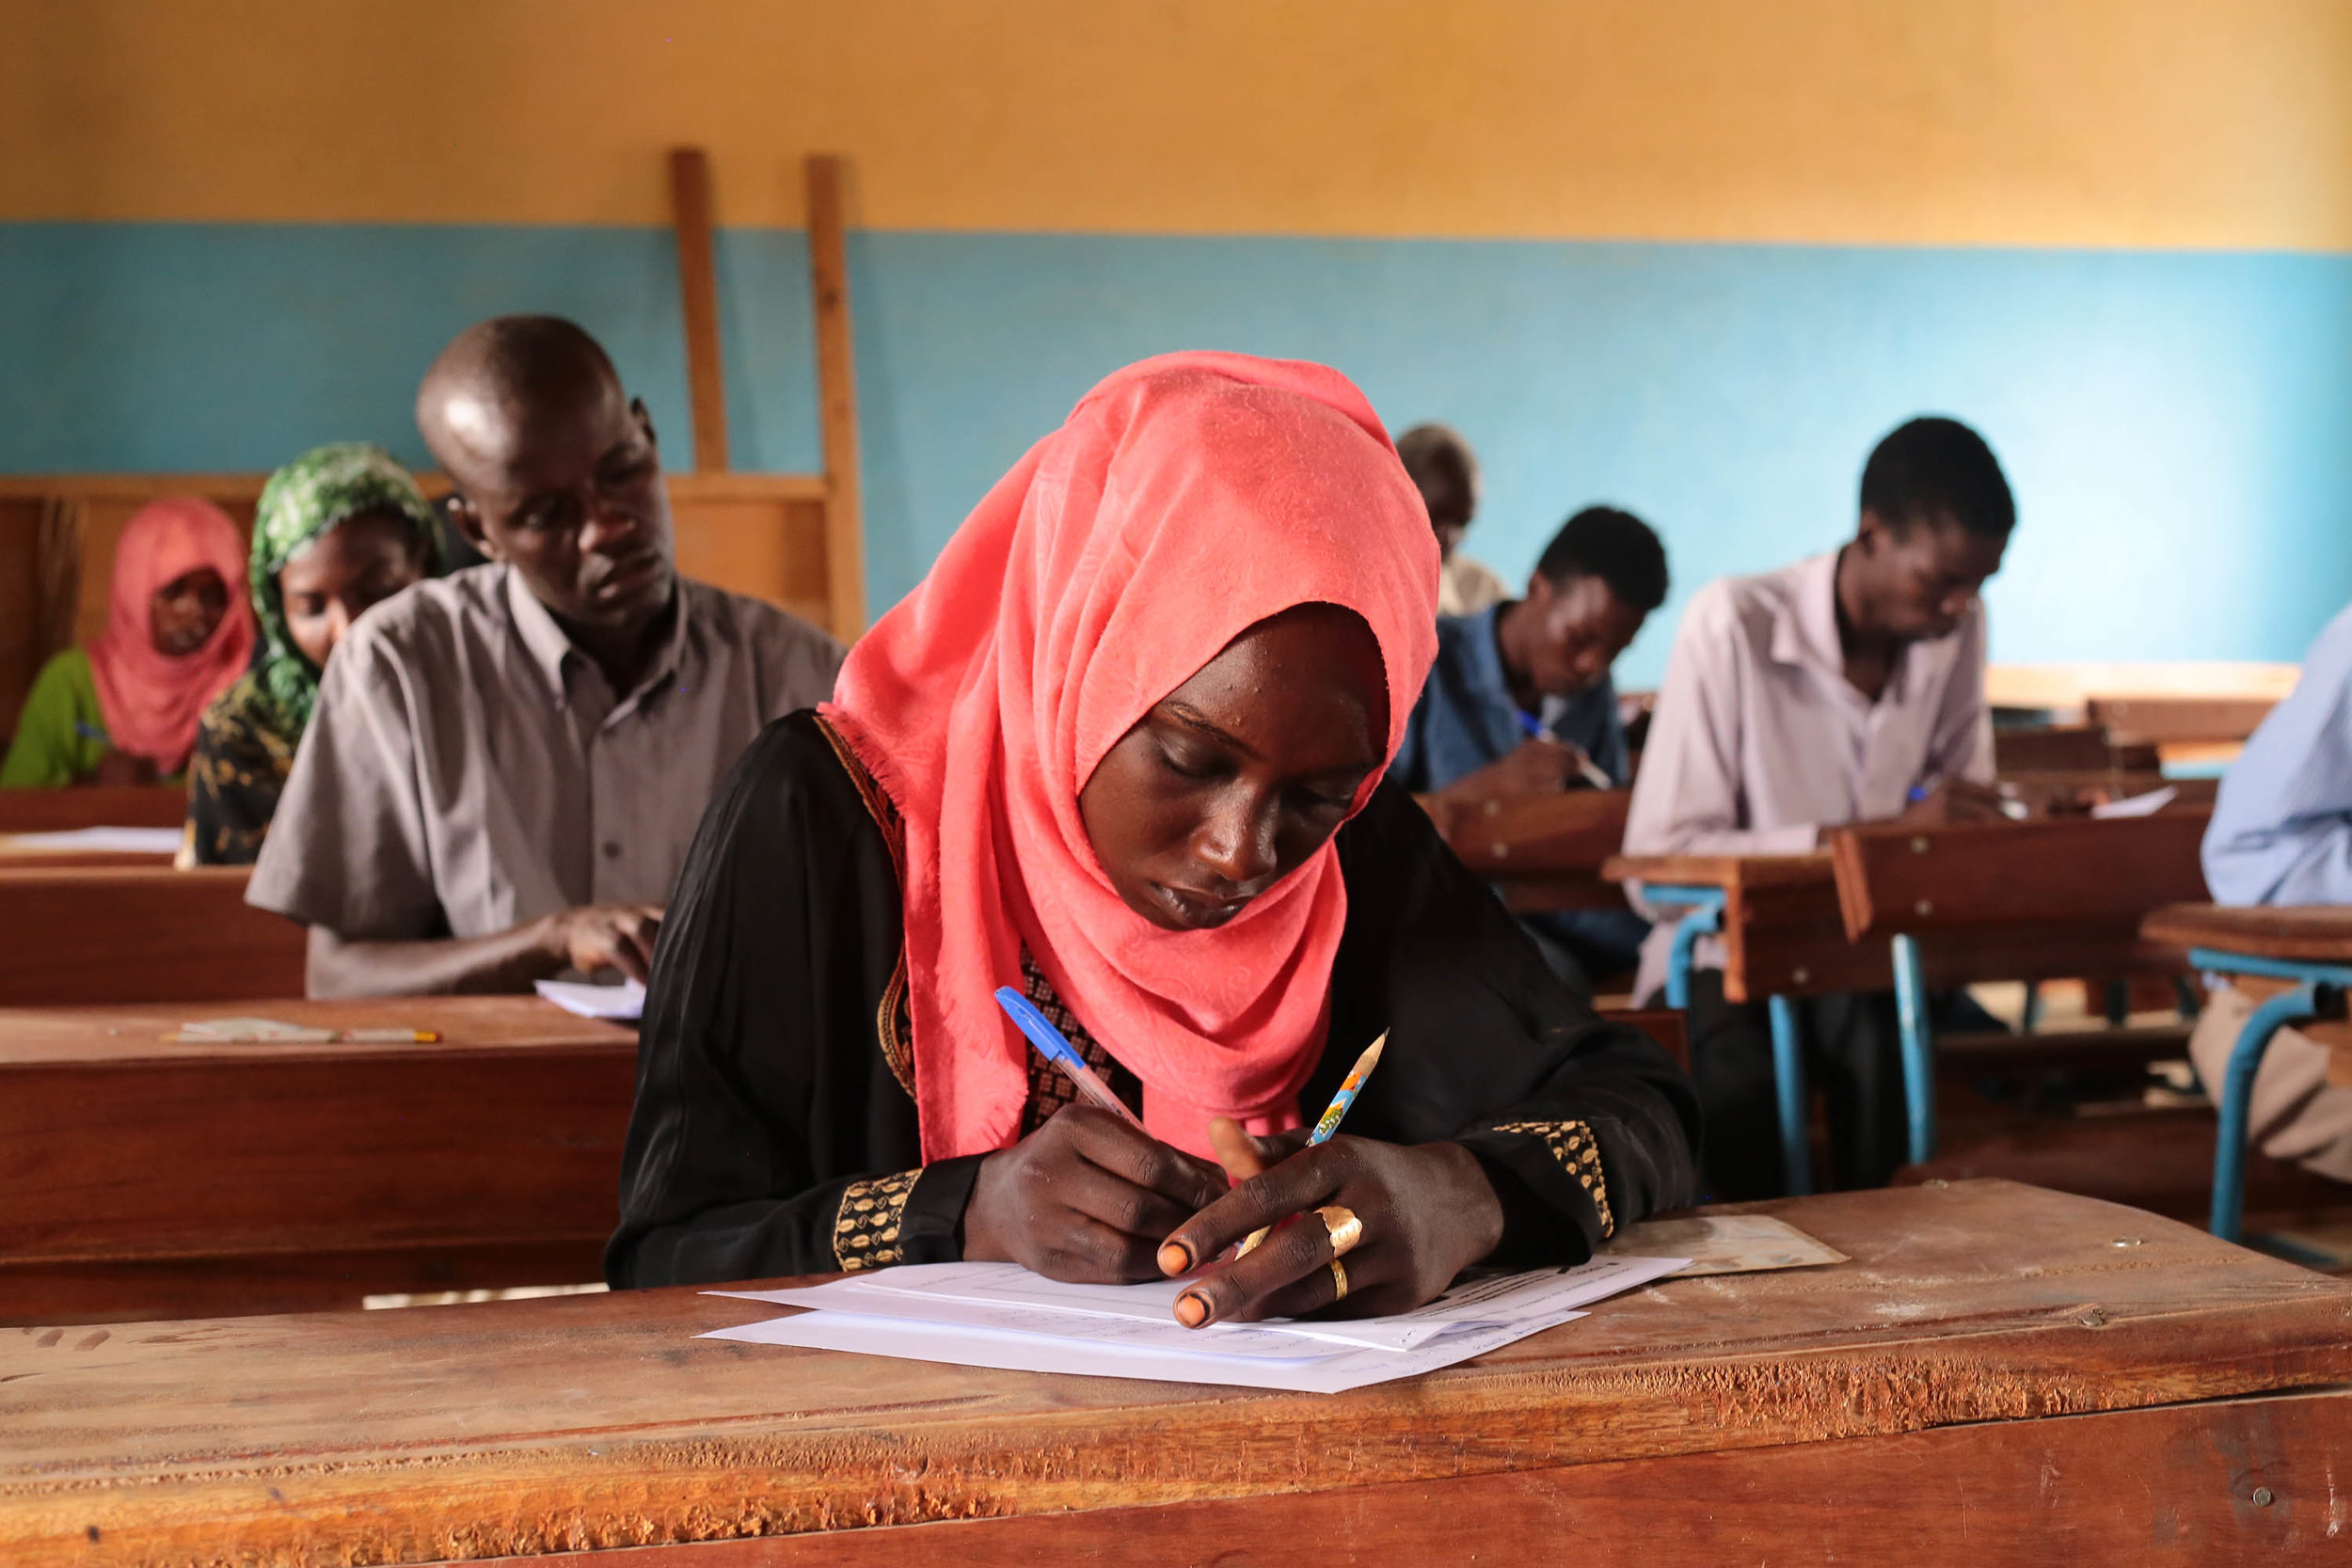 Refugee students from Sudan take language courses in a JRS-sponsored education program in Chad. Chad hosts an increasing number of refugees, particularly in the Lake Chad region, which is already under served by the national education system with 62% of children out of school in 2016.   © Entreculturas/Sergi Camara